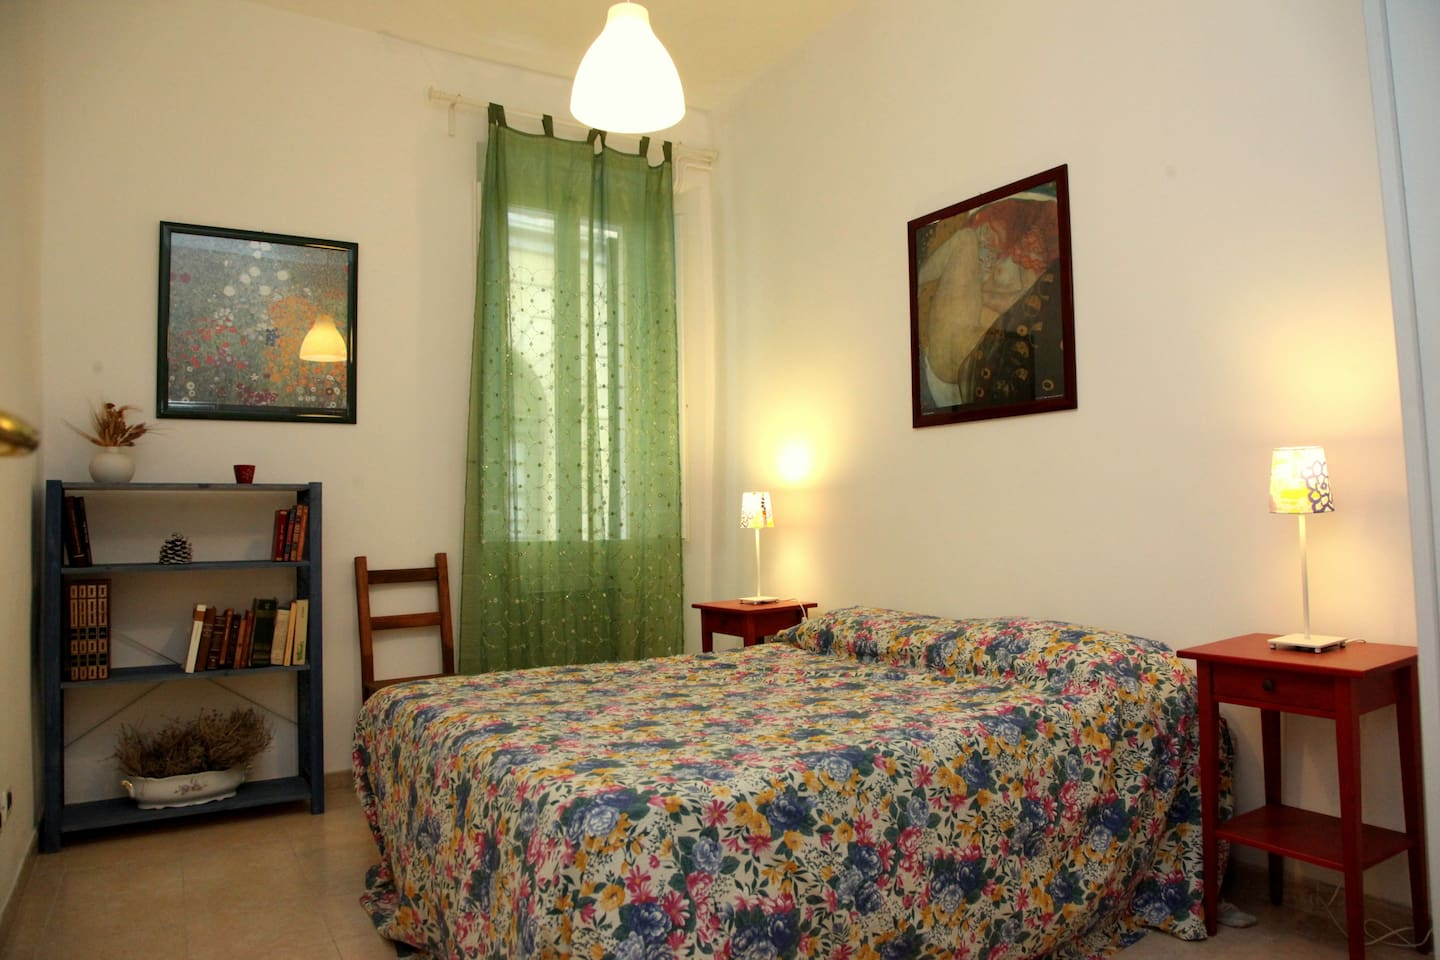 Double Room - double bed (queen/king, European size)  - Air Conditioning, independent heating